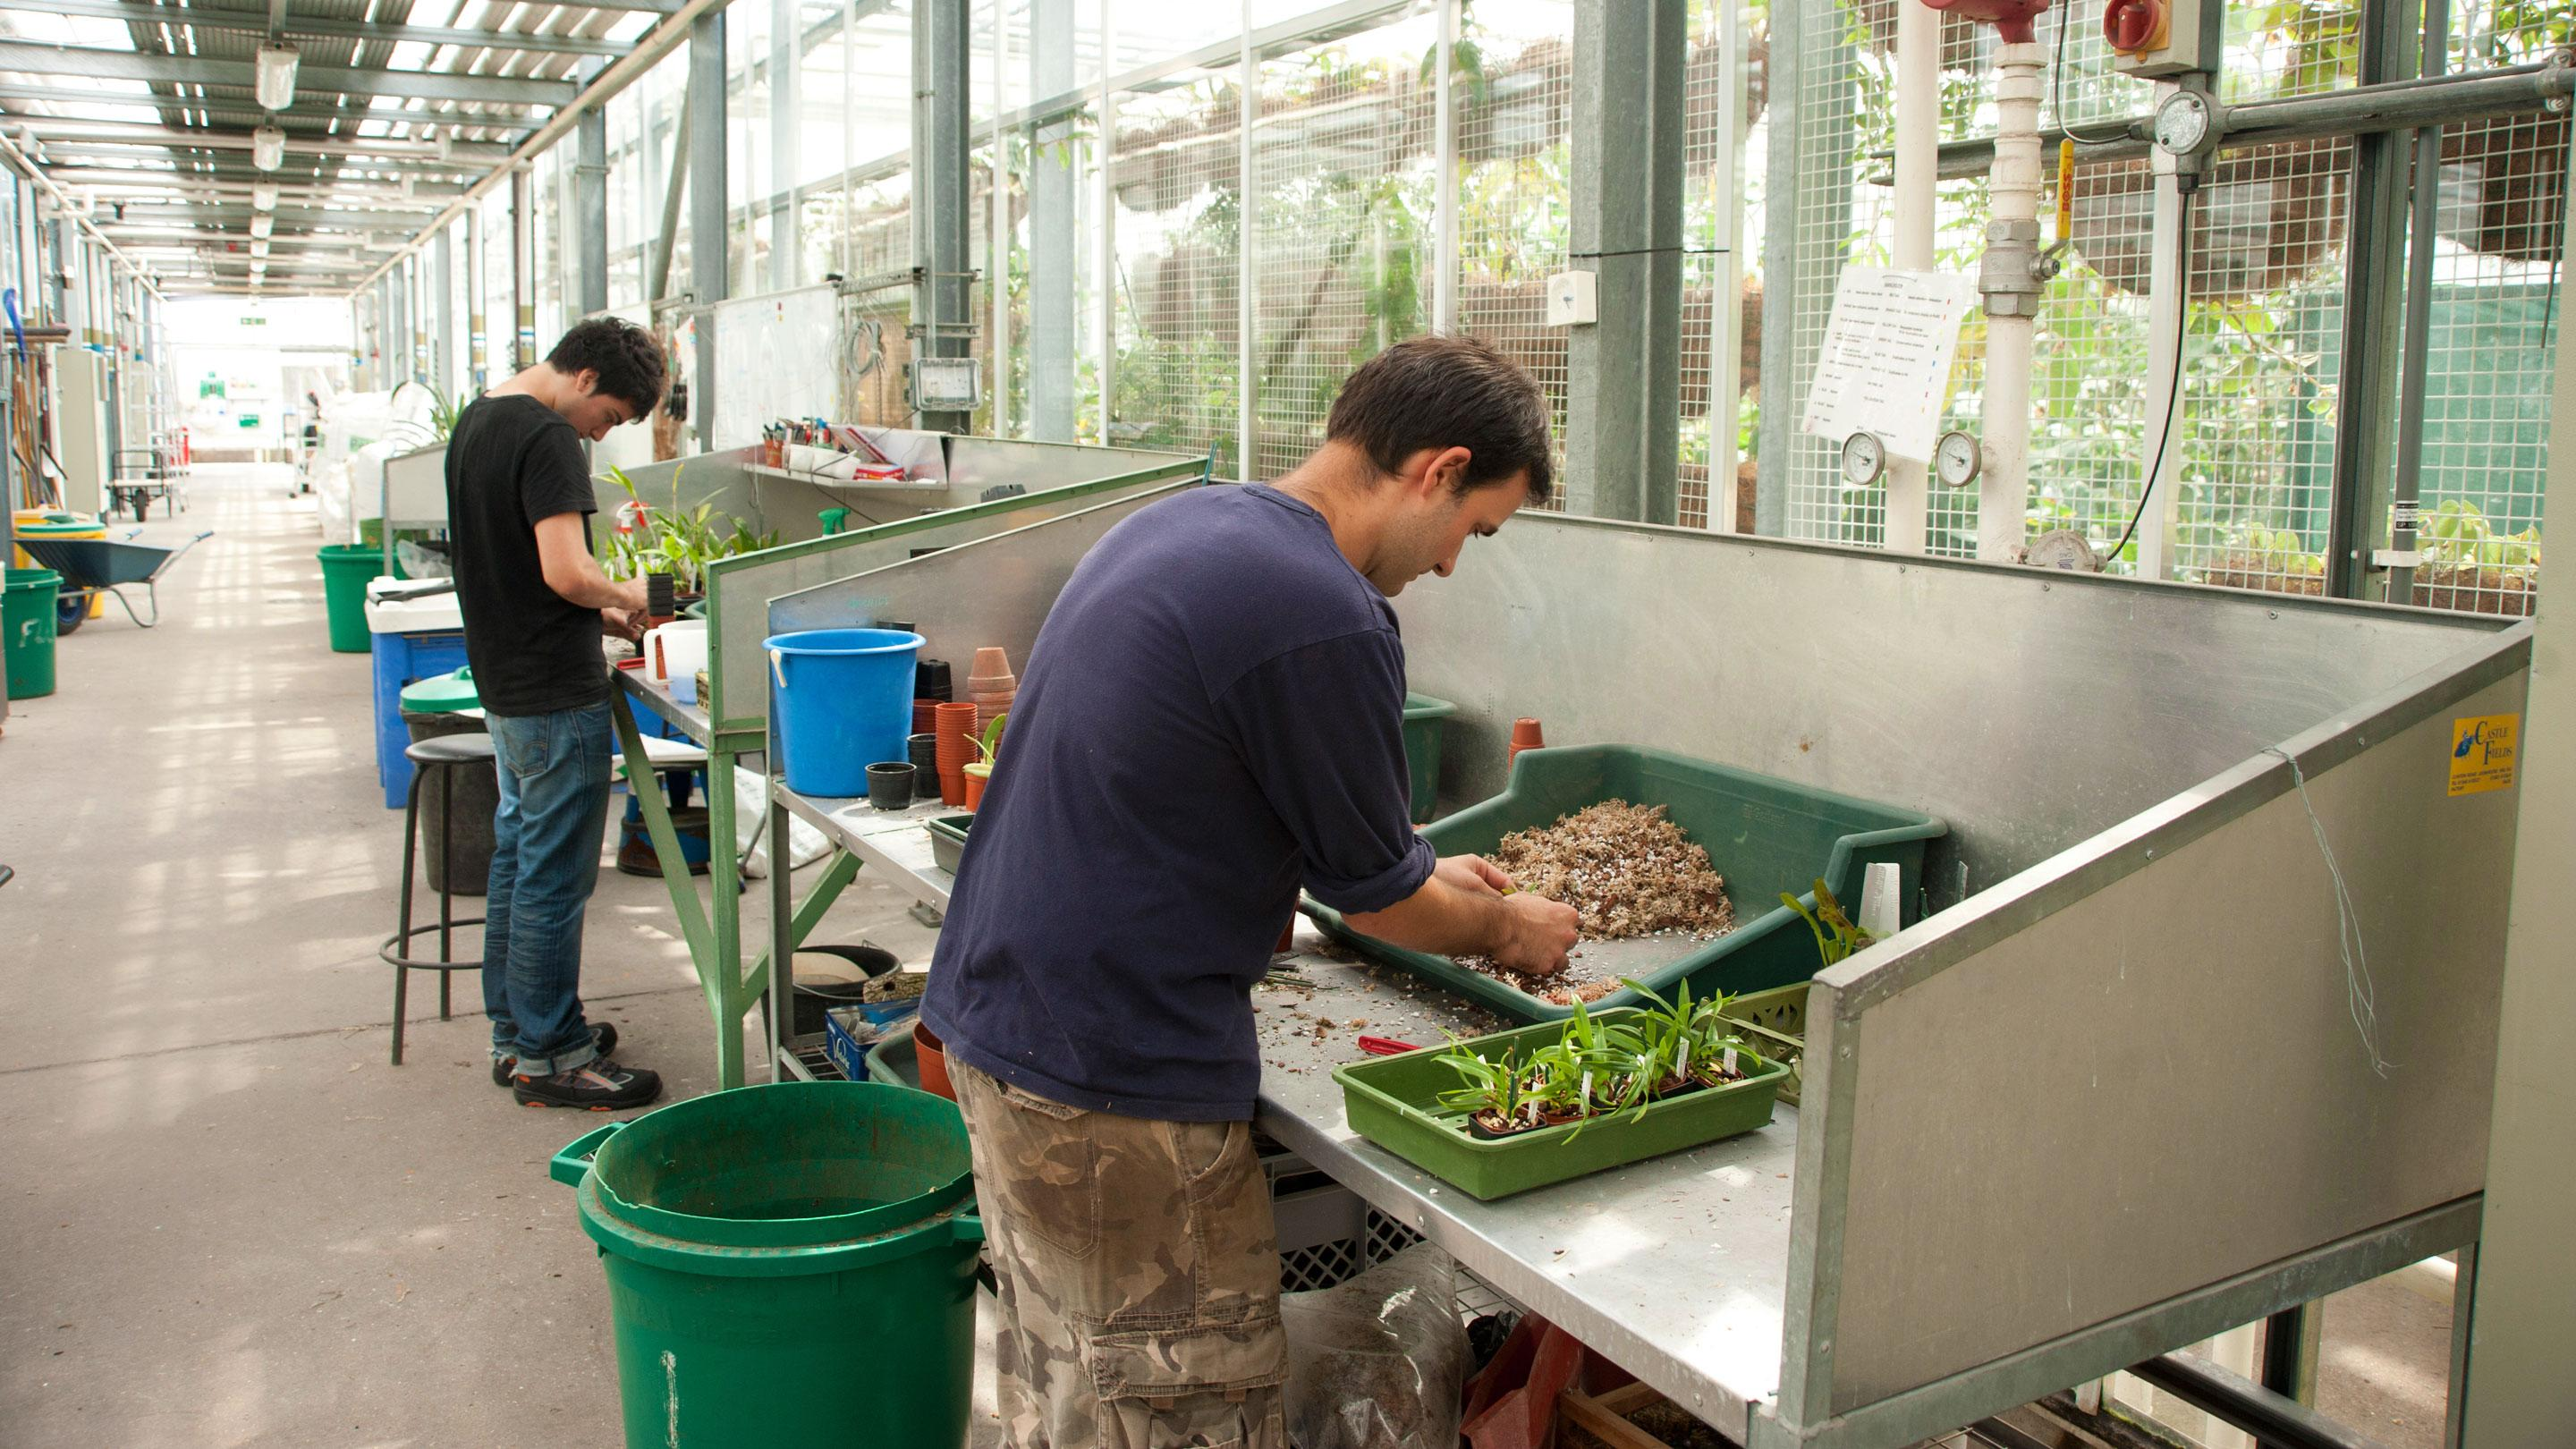 Horticulture training at Kew Gardens